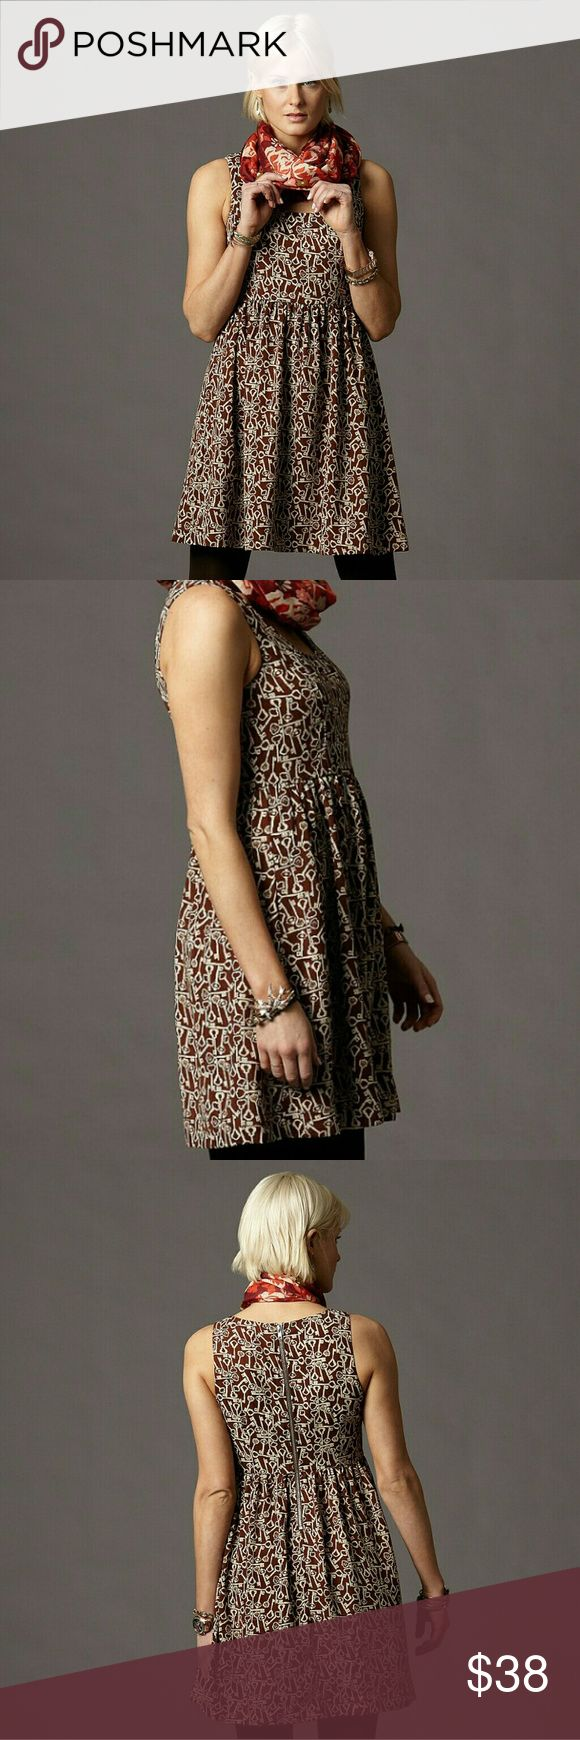 """Fossil Lucy Dress key print Fossil Lucy Dress Size XS  Vintage Key Print  100% polyester Fully lined Bust 32"""" Waist 26"""" Total length 33""""  **bundle and save 20%** Fossil Dresses"""